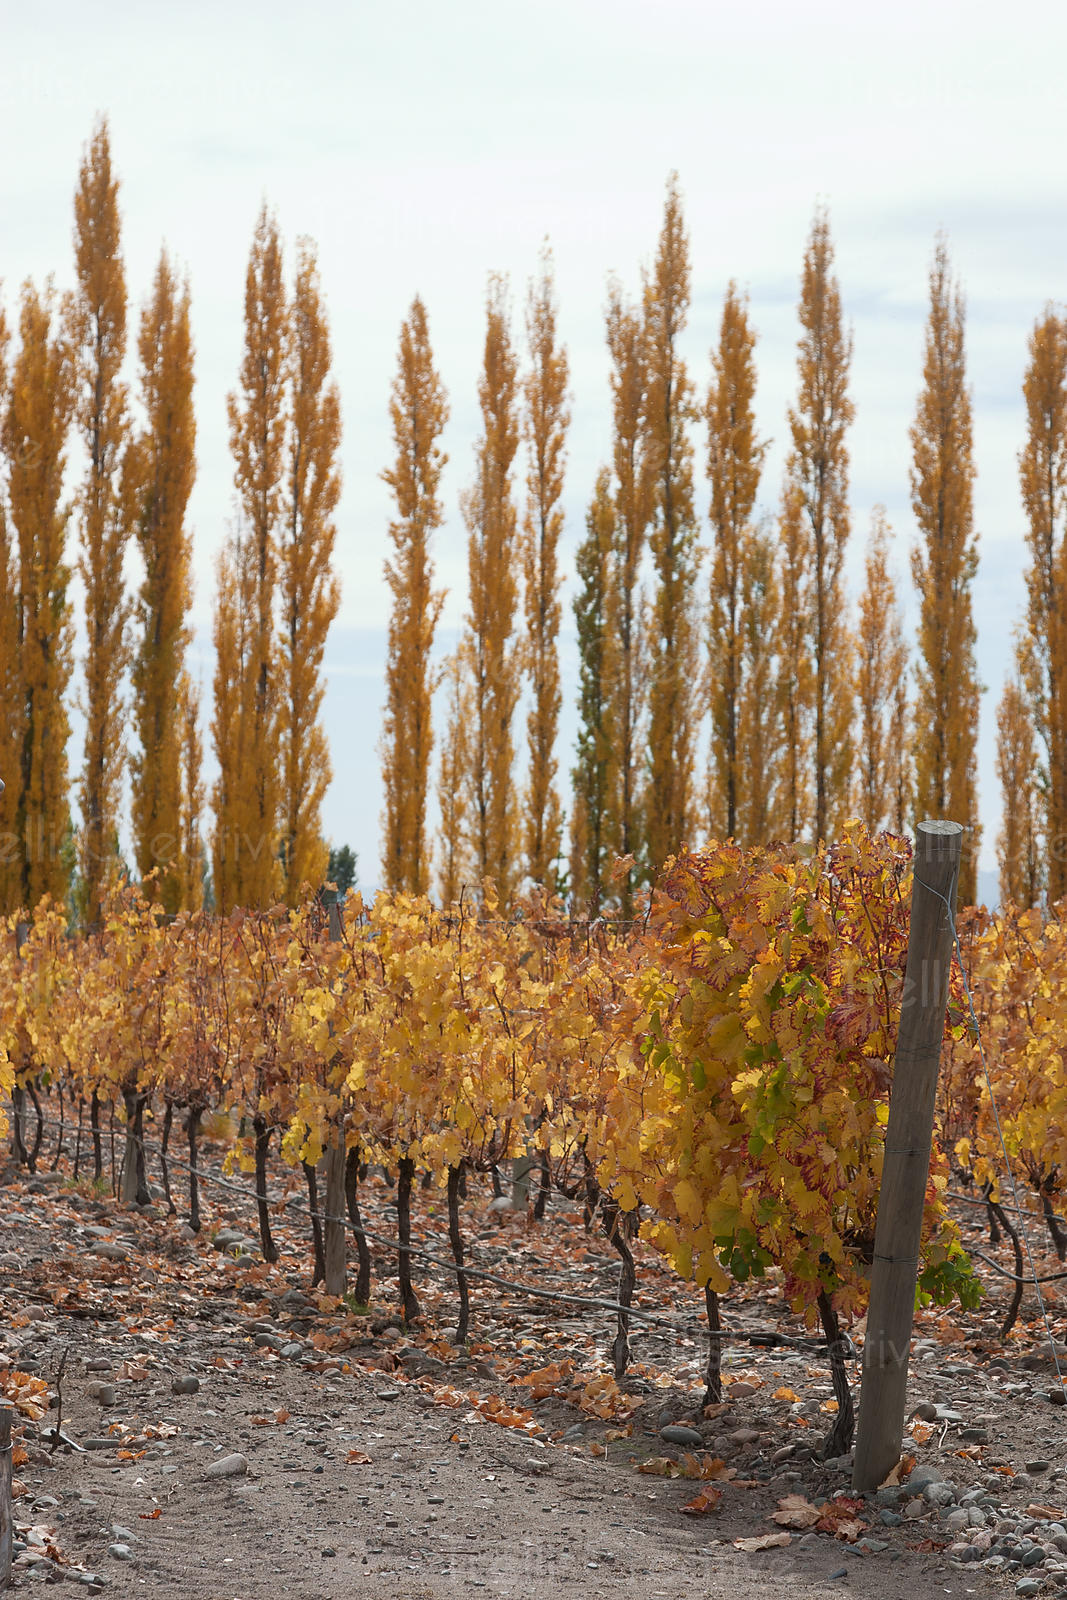 Autumn poplar trees behind one row of vines. Dusty, dirt underneath, golden leaves. Sky. One pole at end of vineyard. Portrait view.